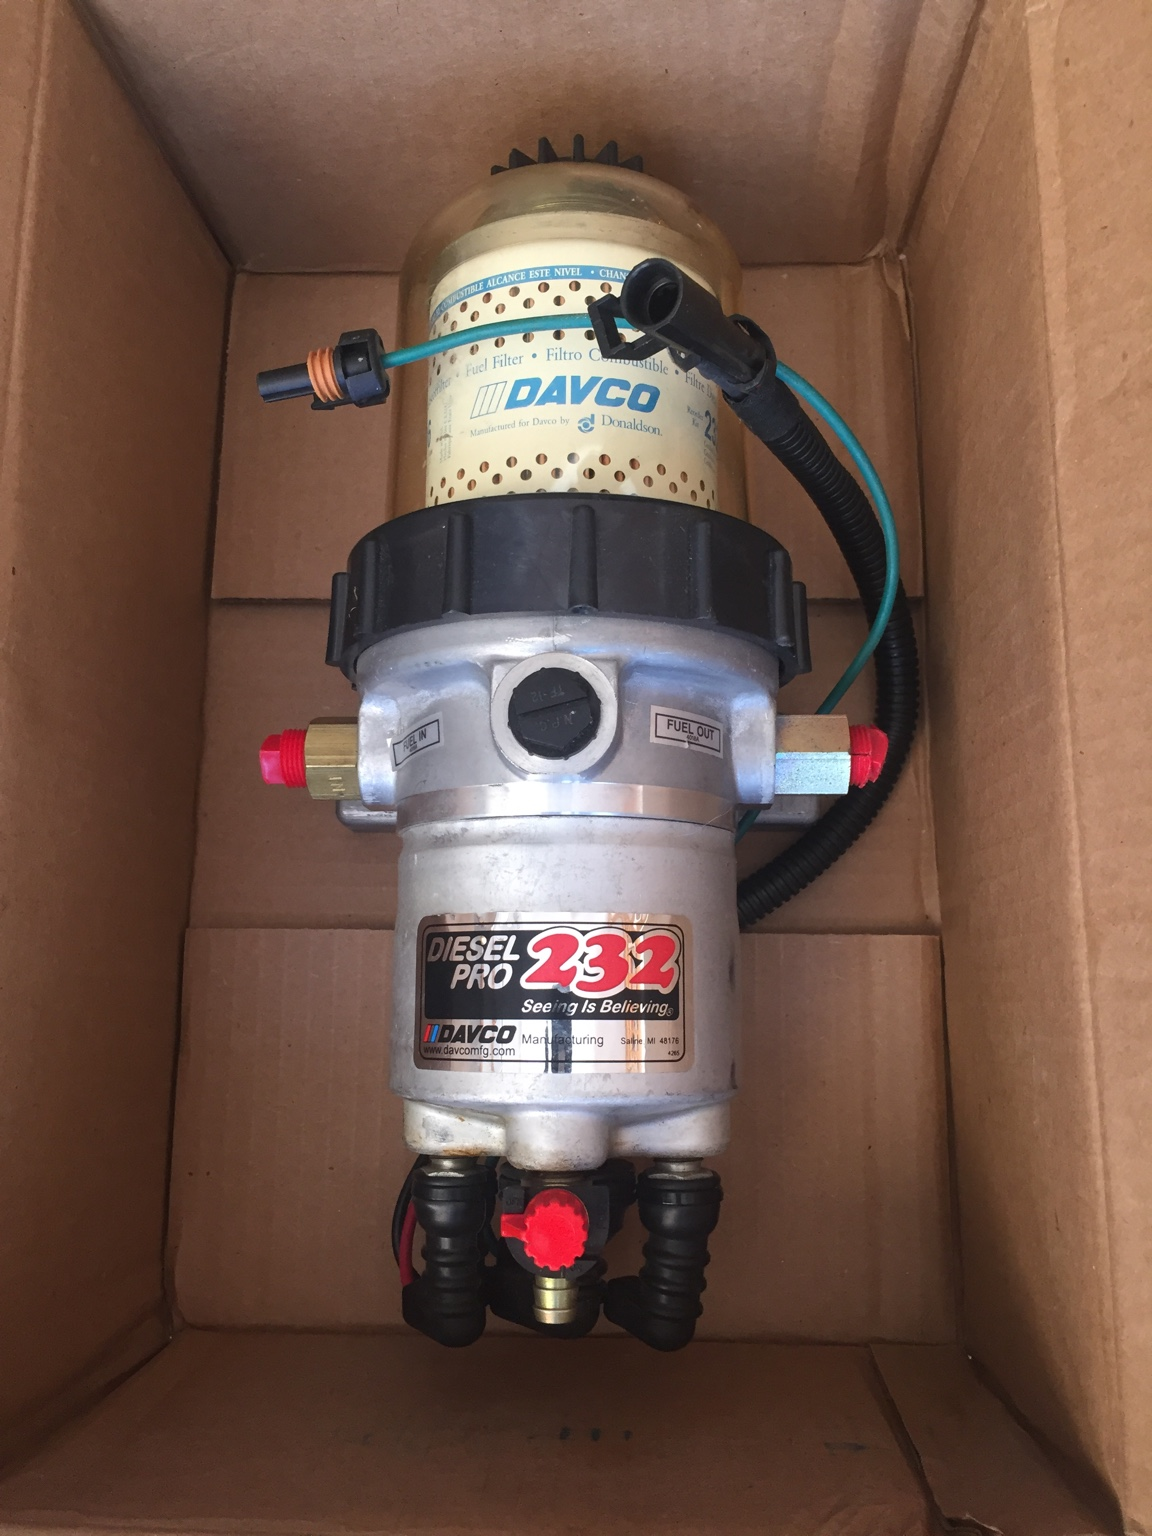 davco diesel pro 232 fuel filter assembly w/electric heater -new      $135+shipping